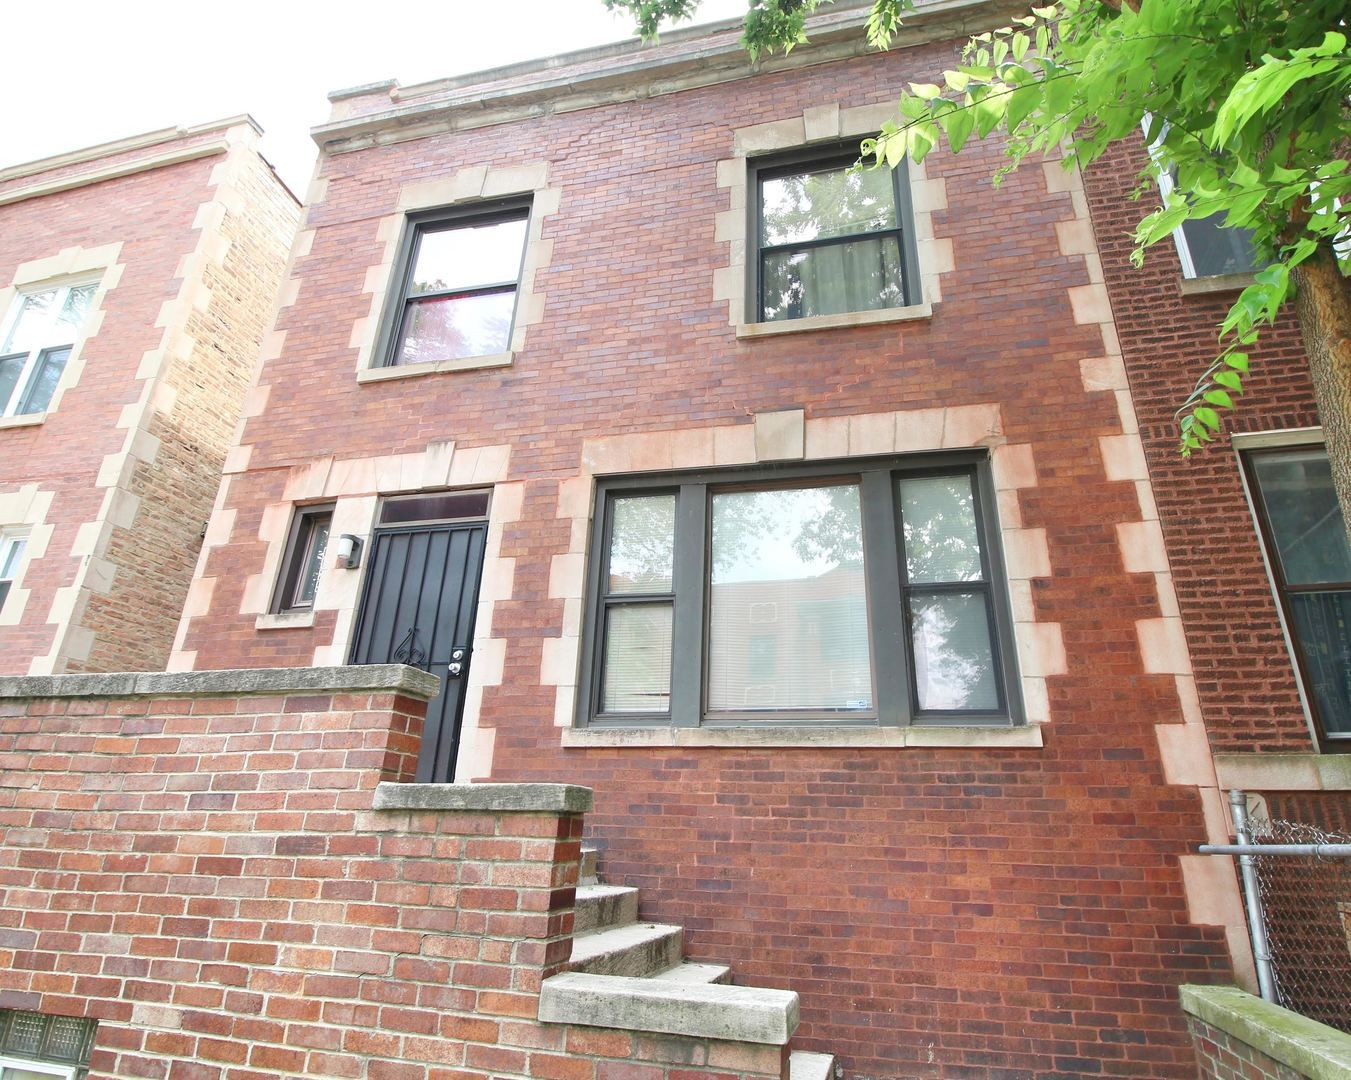 Main Photo: 6025 S Eberhart Avenue in Chicago: CHI - Woodlawn Residential for sale ()  : MLS®# 11152579